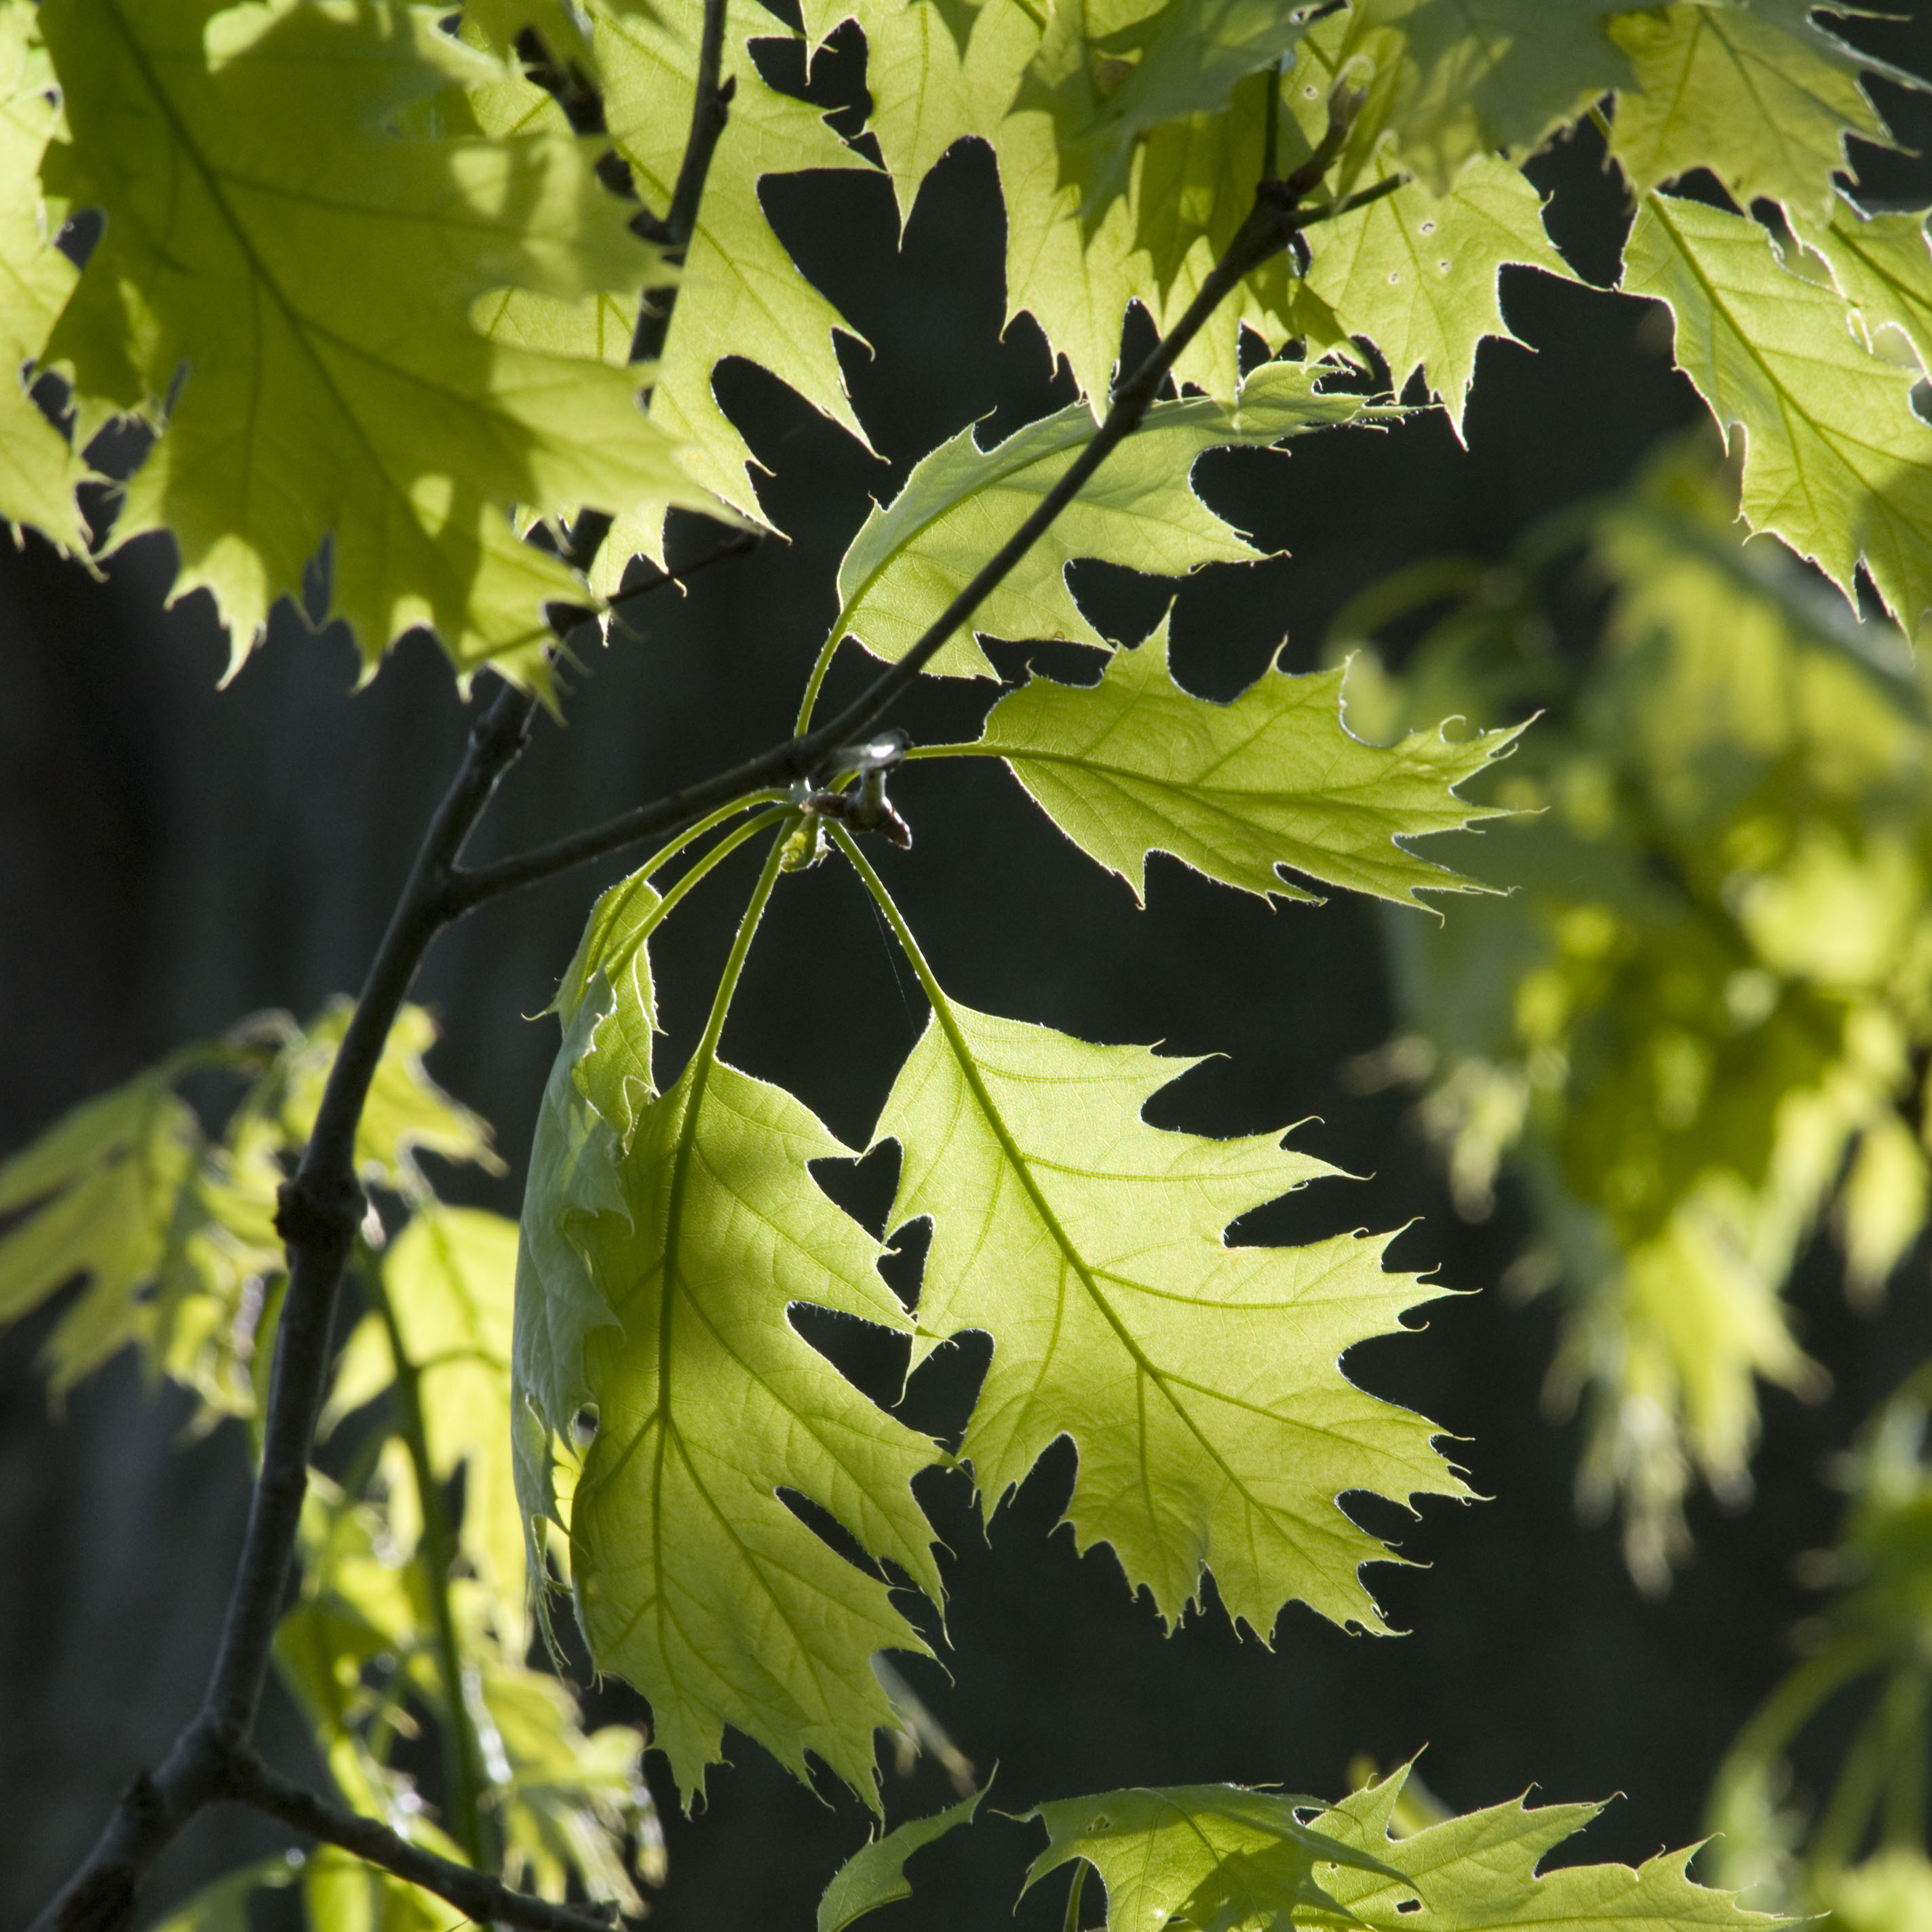 PHOTO: Oak leaves.